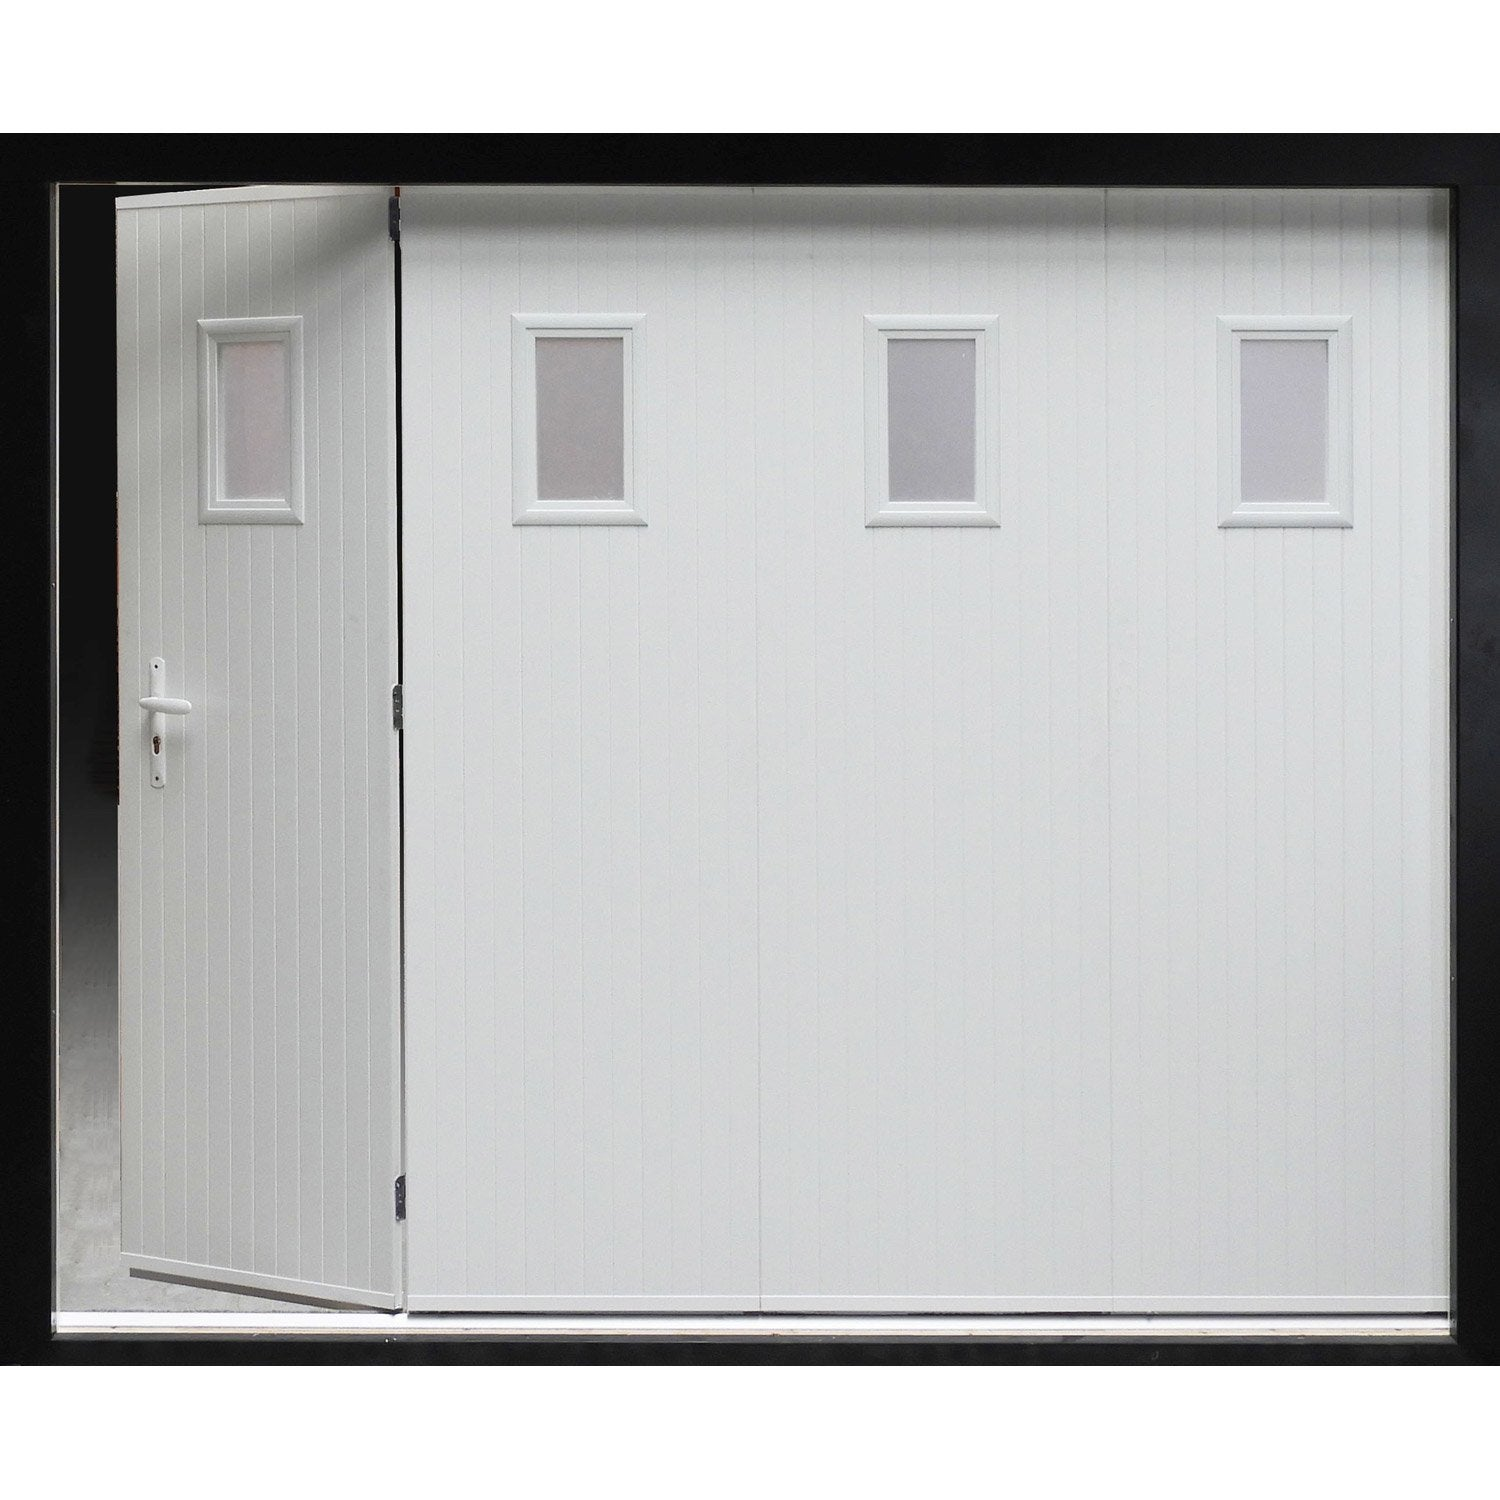 Porte de garage coulissante manuelle artens x for Porte de garage sectionnelle avec portillon sur mesure